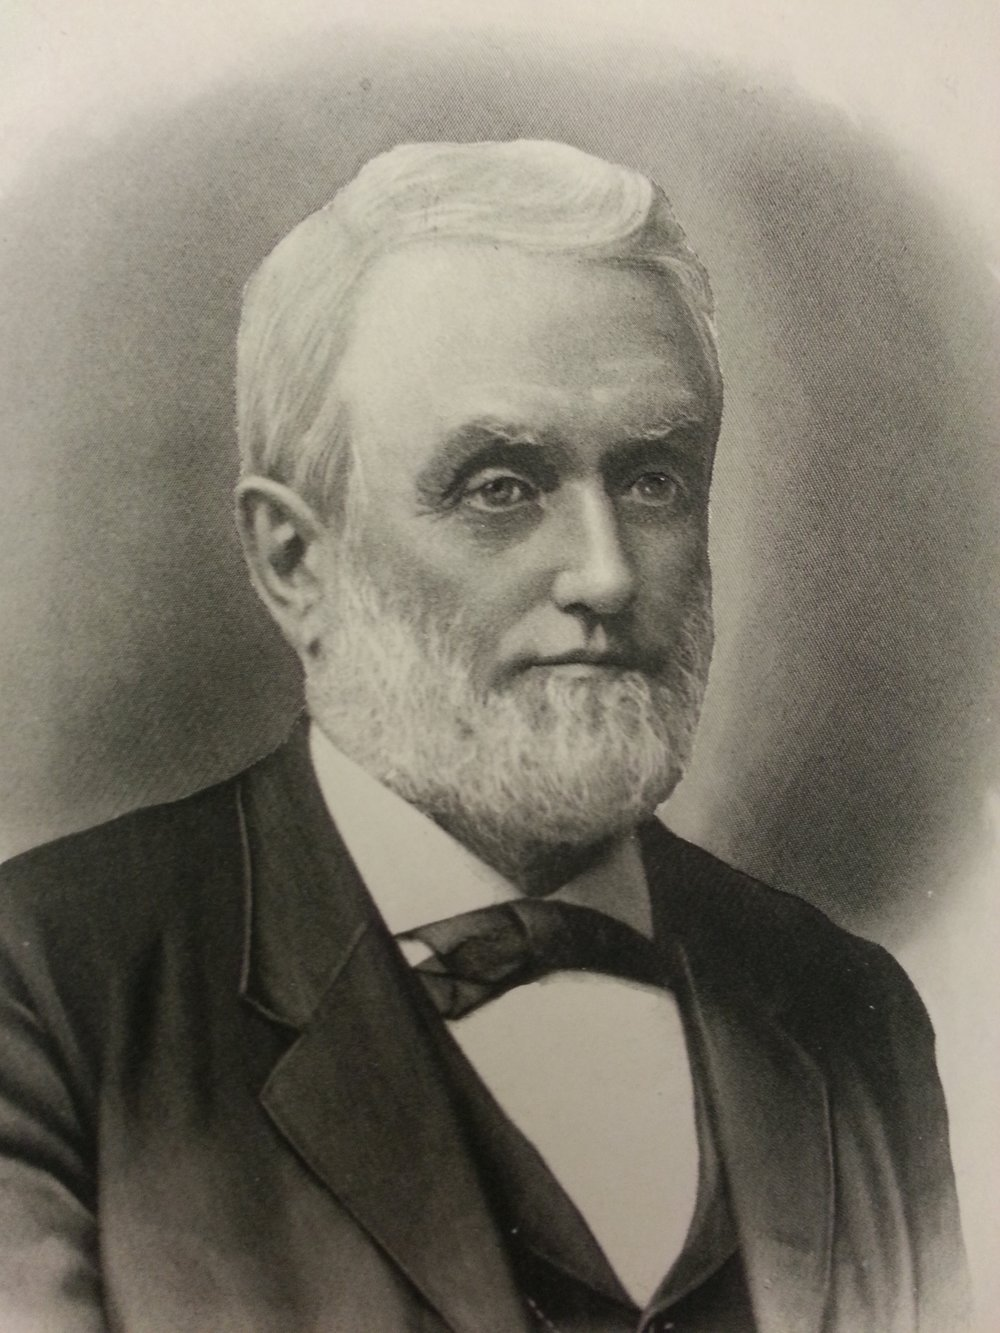 Henry Green - Chief Justice of the Pennsylvania Supreme Court beginning in 1900